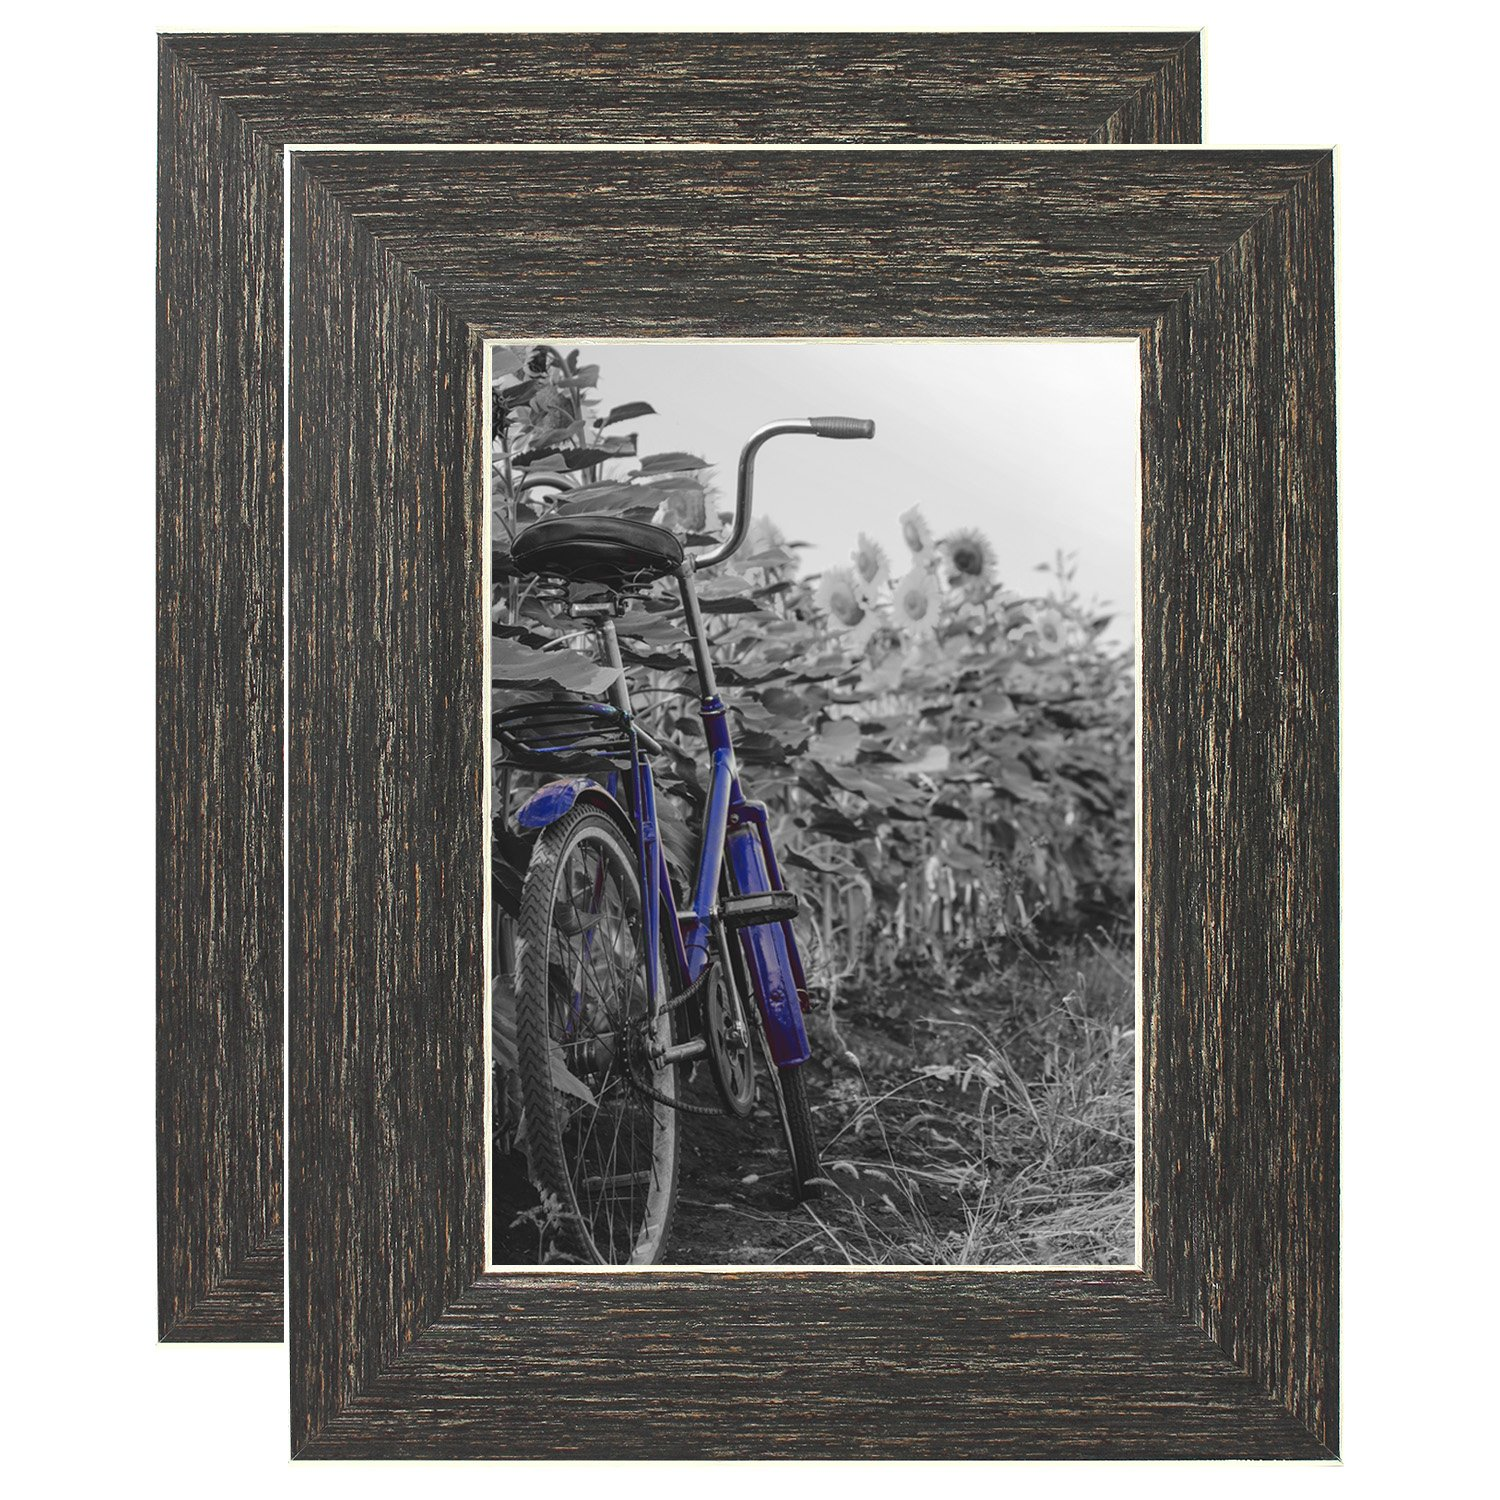 Americanflat 2 Pack - 5x7 Barnwood Rustic Style Picture Frames - Built-in Easels - Wall Display - Tabletop Display by Americanflat